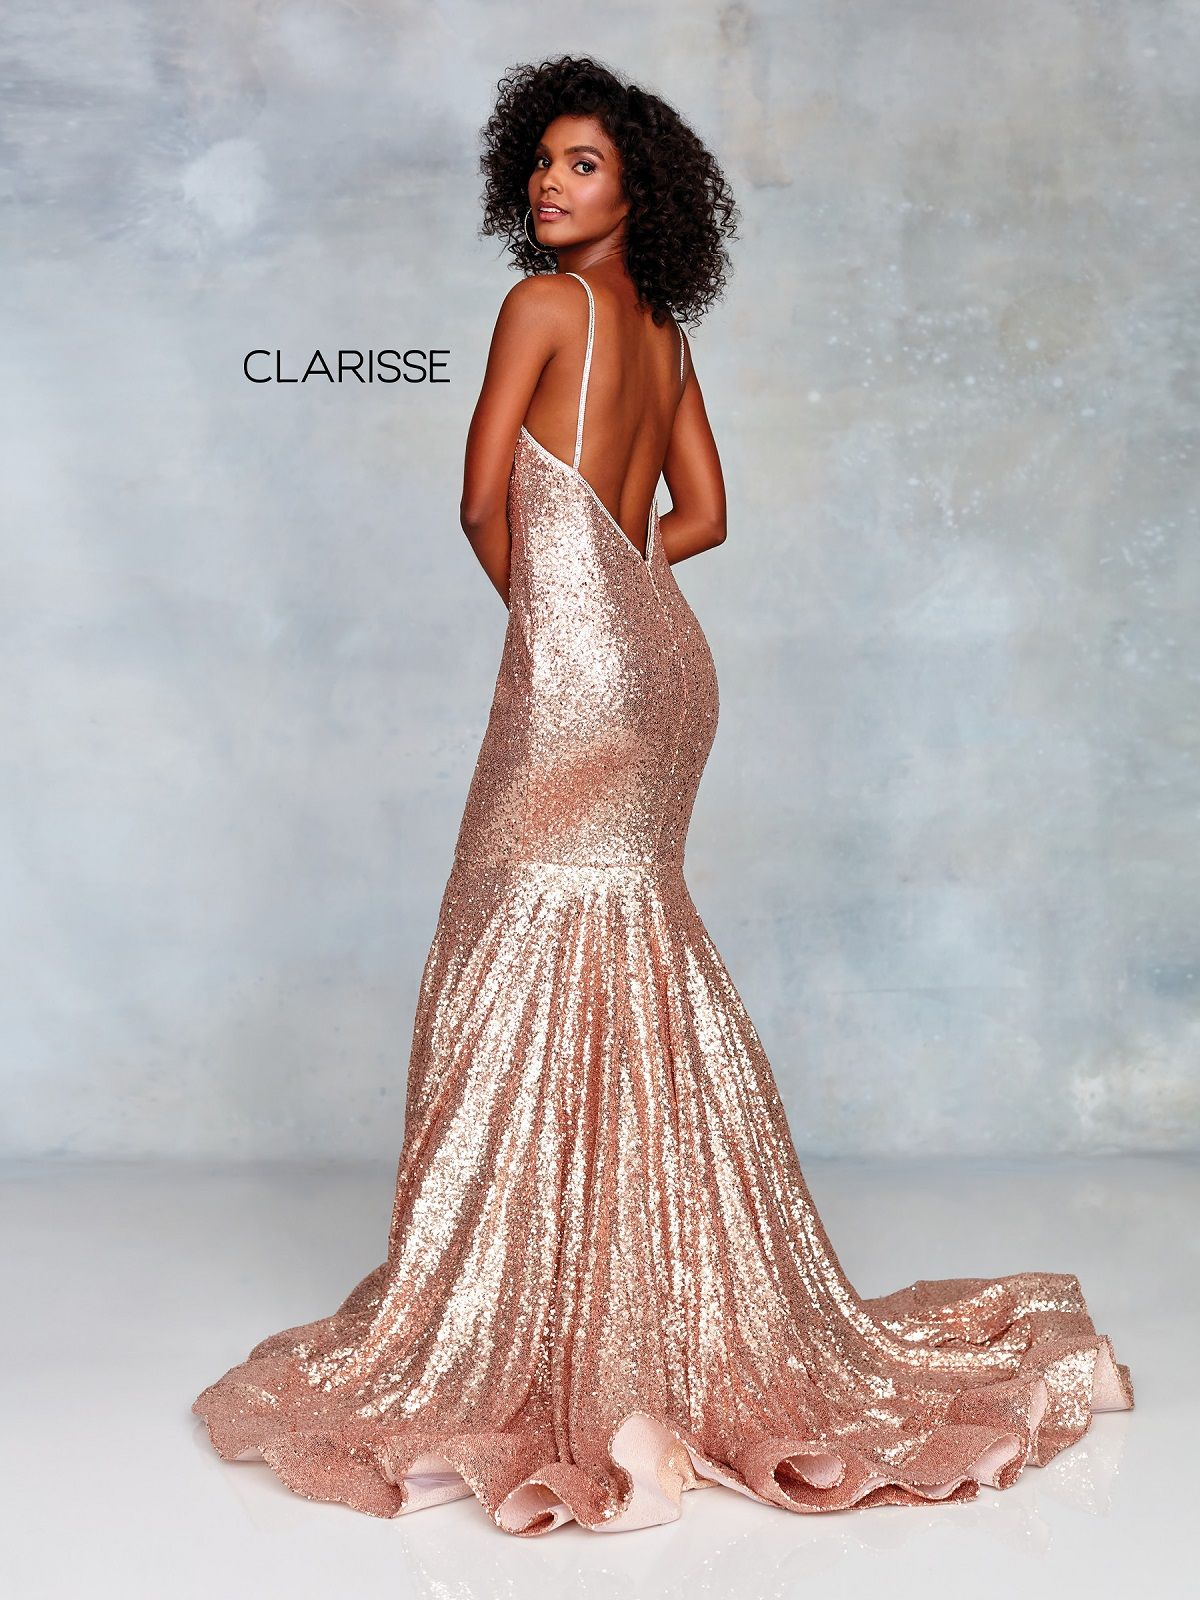 Get This Dress And Accessories At Its Fashion Metro In: Clarisse 3882 Glamorous Rose Gold Gown